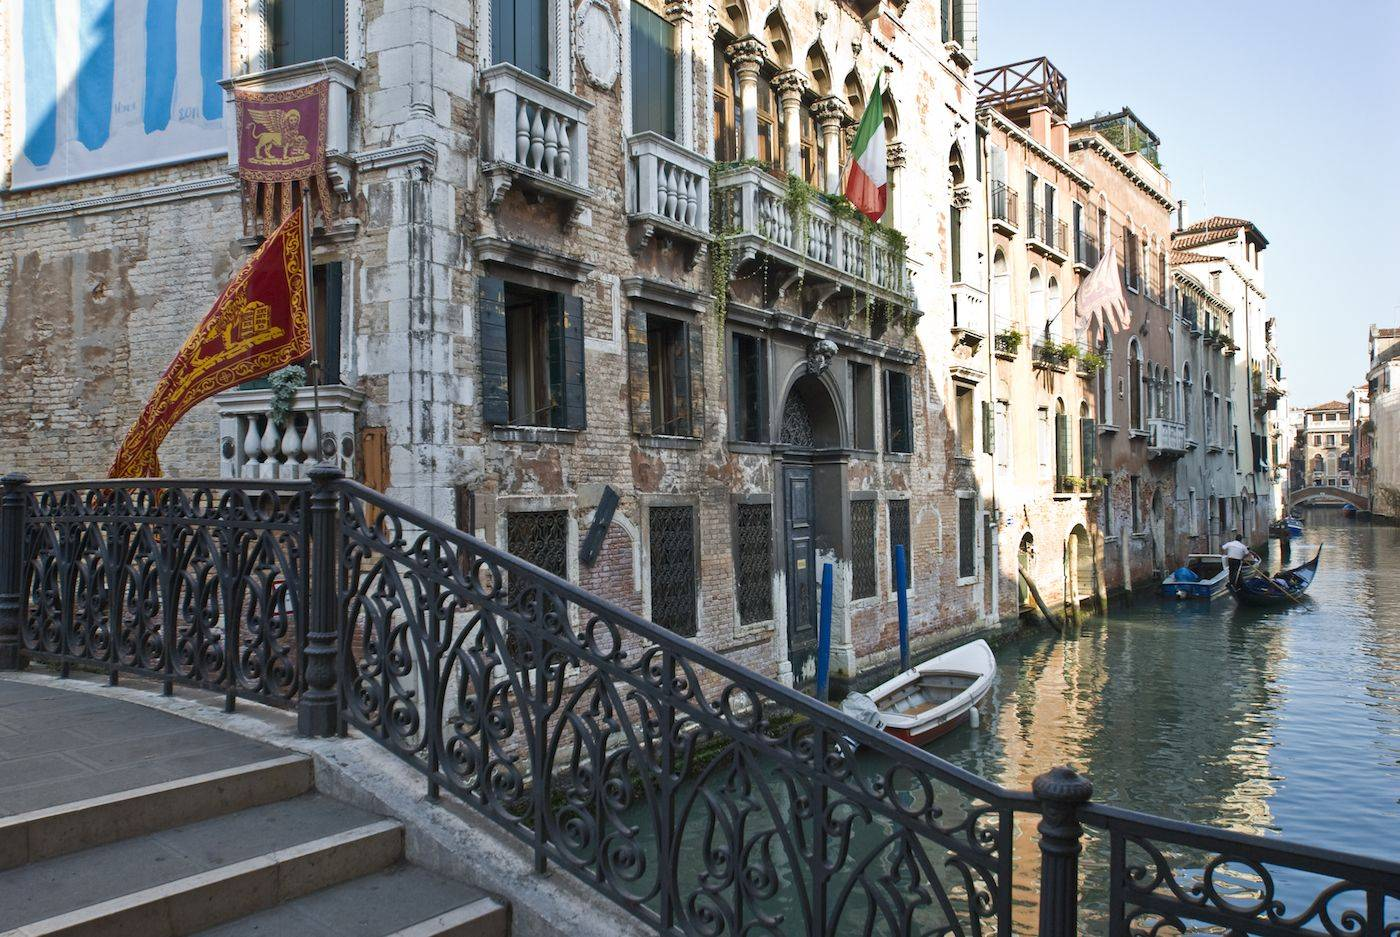 surroundings: gothic style nobiliar palaces facing picturesque canals